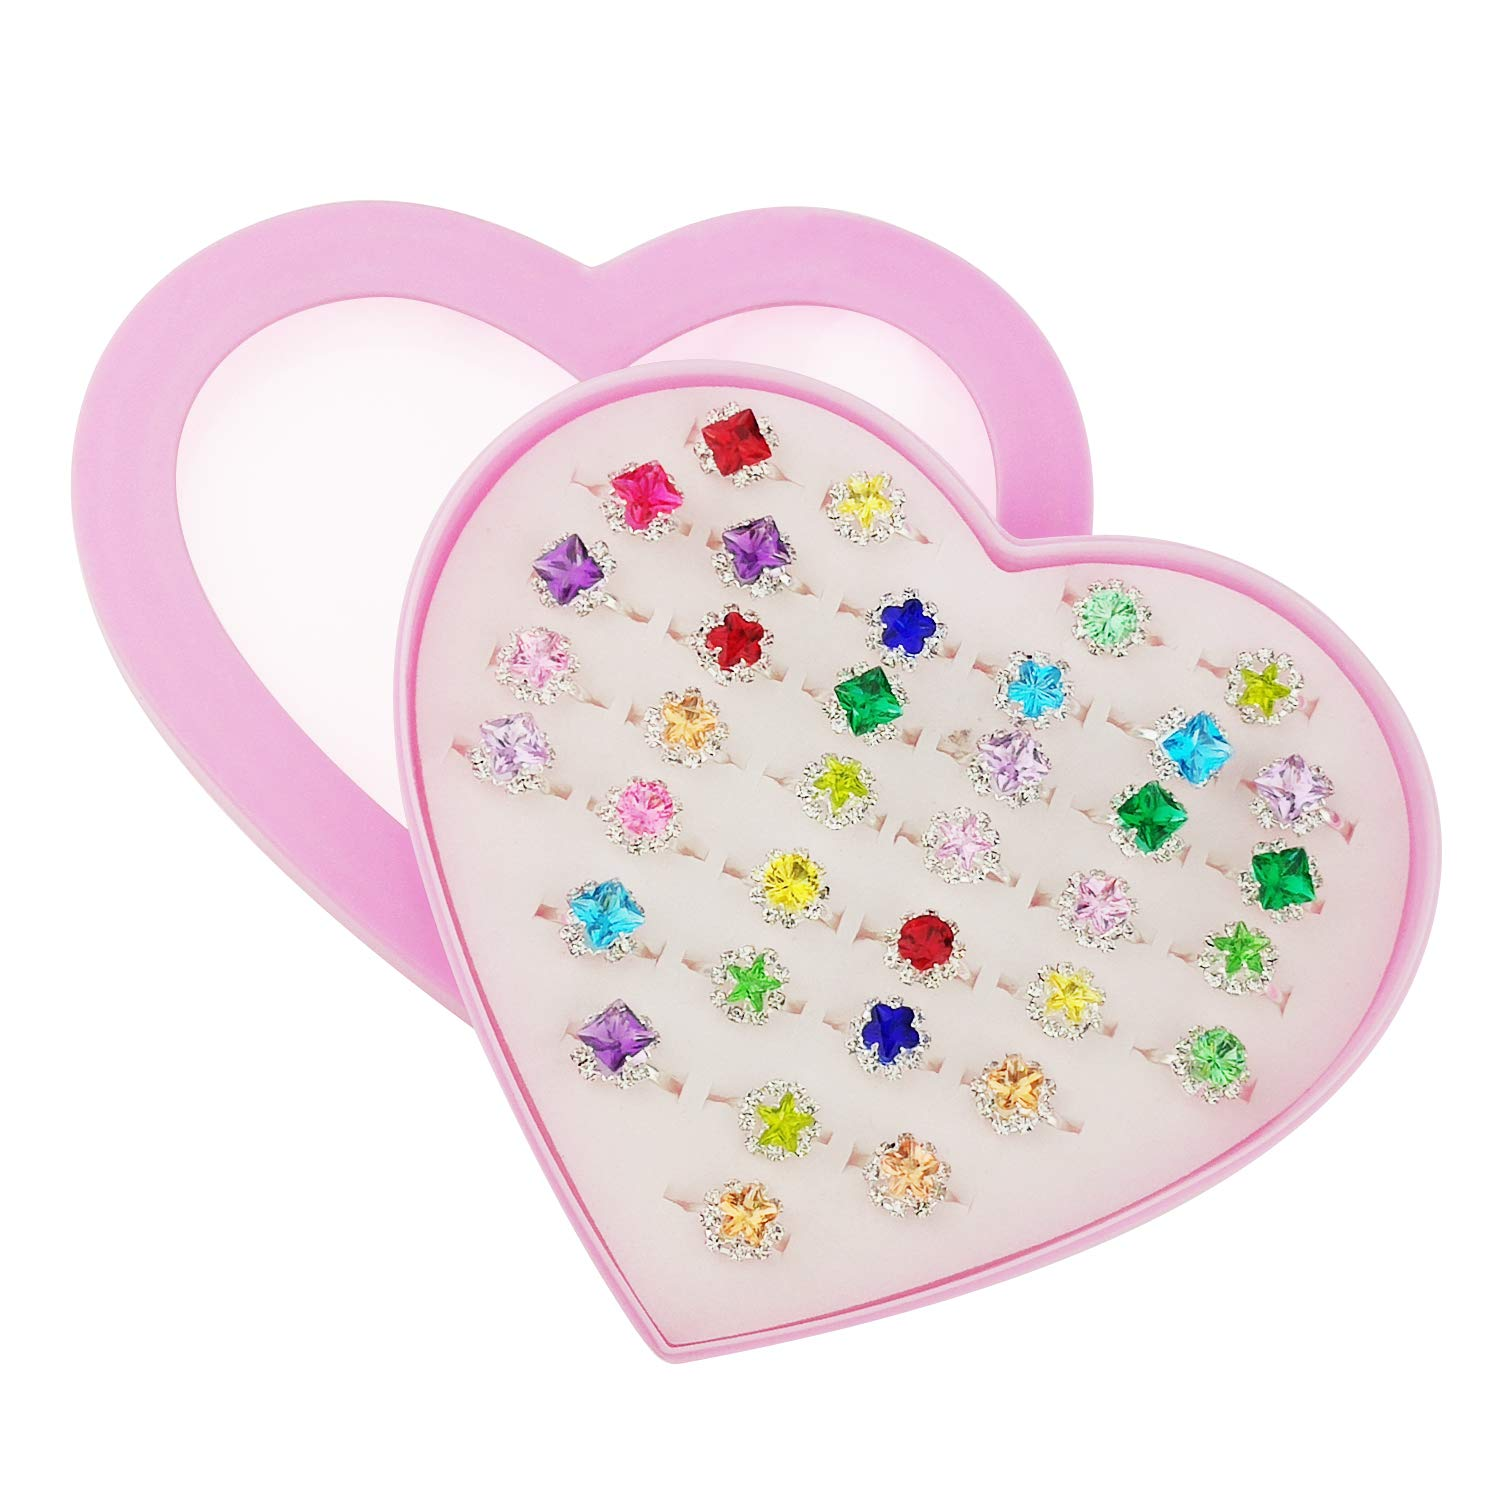 PinkSheep Little Girl Jewel Rings in Box 24 Surface Ring Girl Pretend Play and Dress Up Rings Adjustable No Duplication